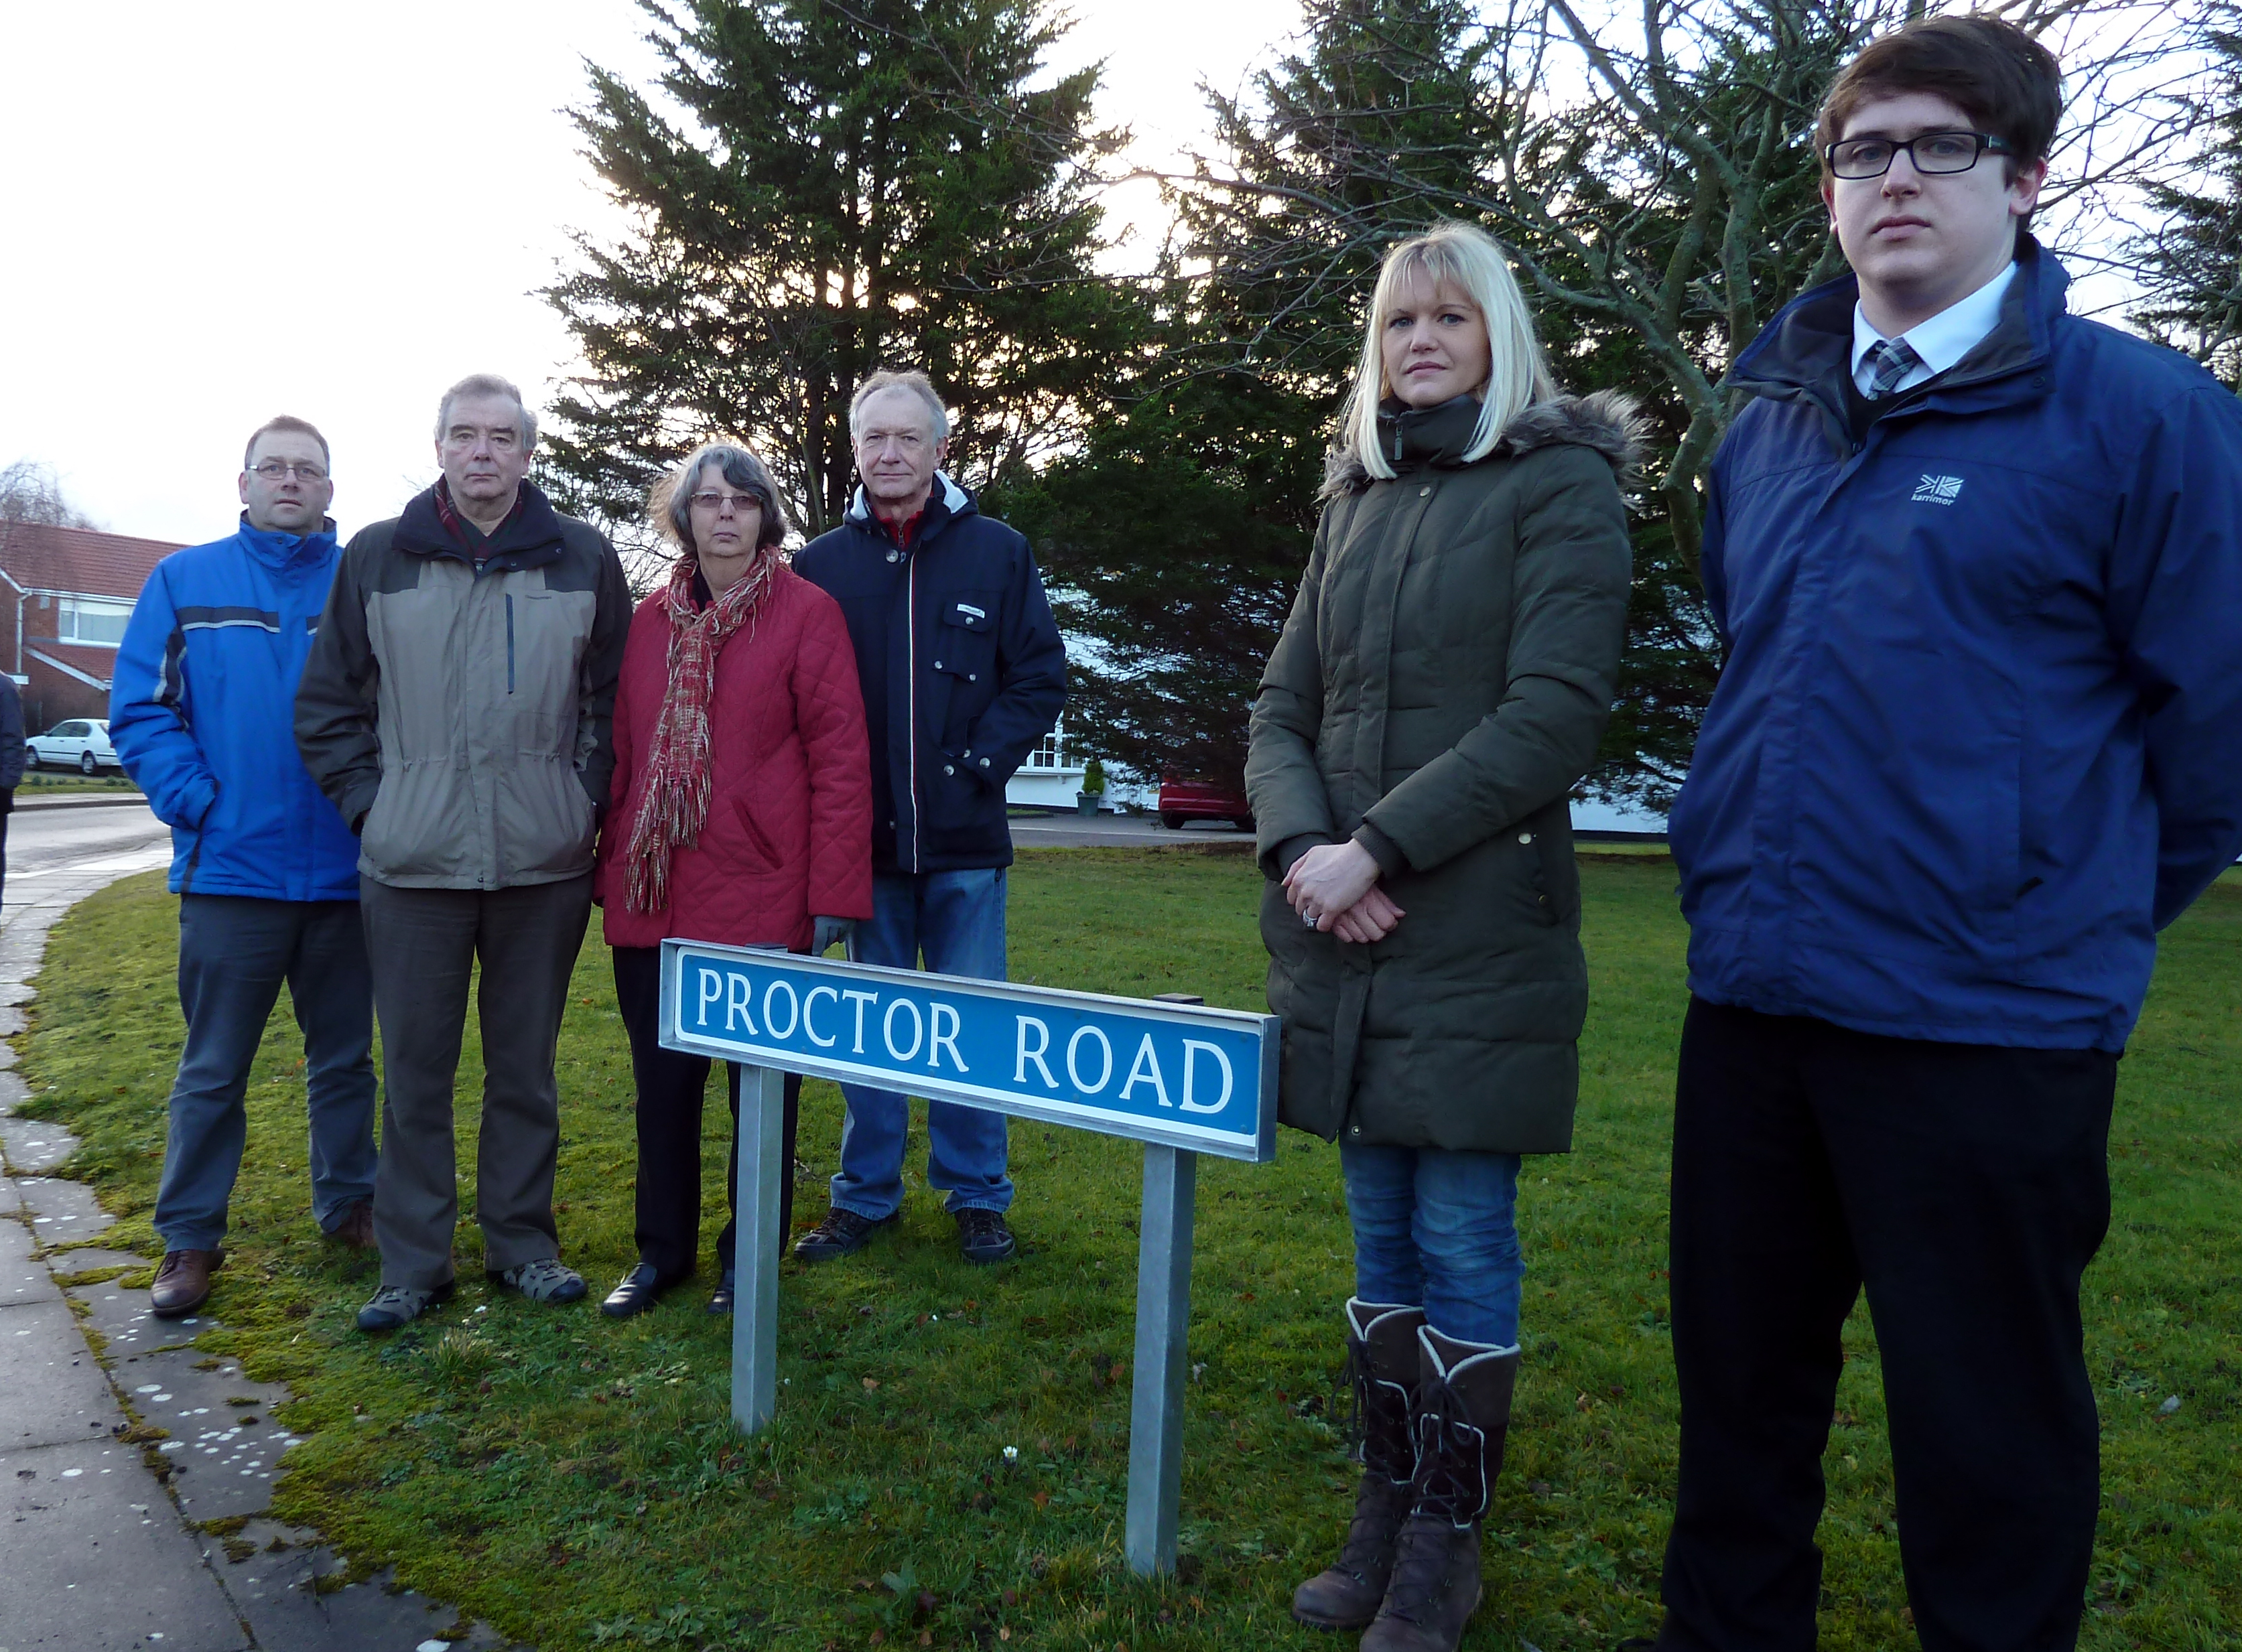 Formby Labour Action Team's Cllr Nina Killen and Tom Donnelly with some of the Proctor Road residents.